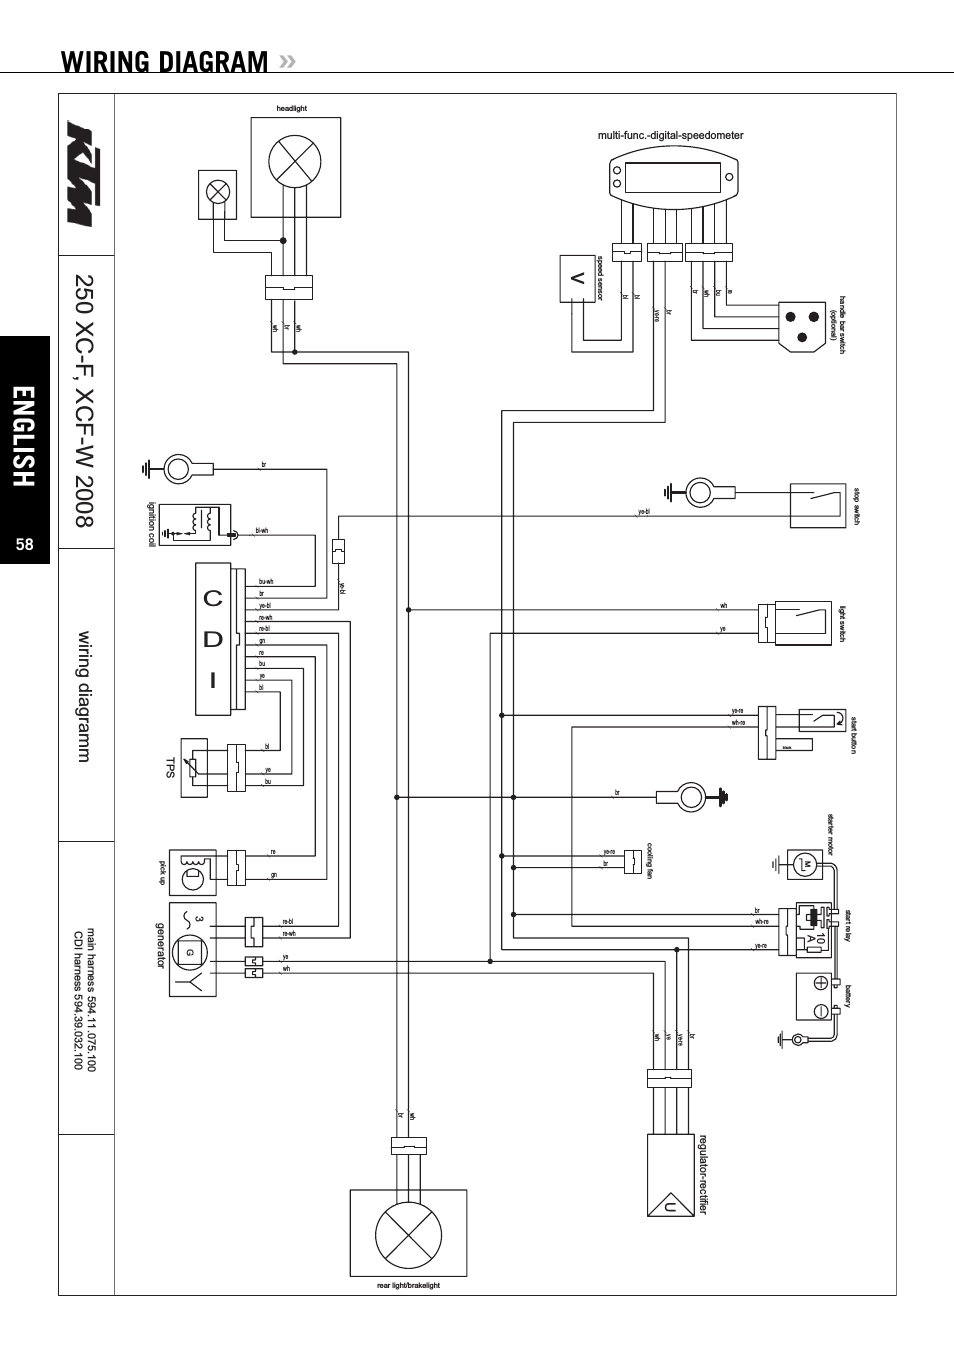 ktm 620 96 wiring diagrams - wiring diagram bland-completed-b -  bland-completed-b.fugadalbenessere.it  fugadalbenessere.it